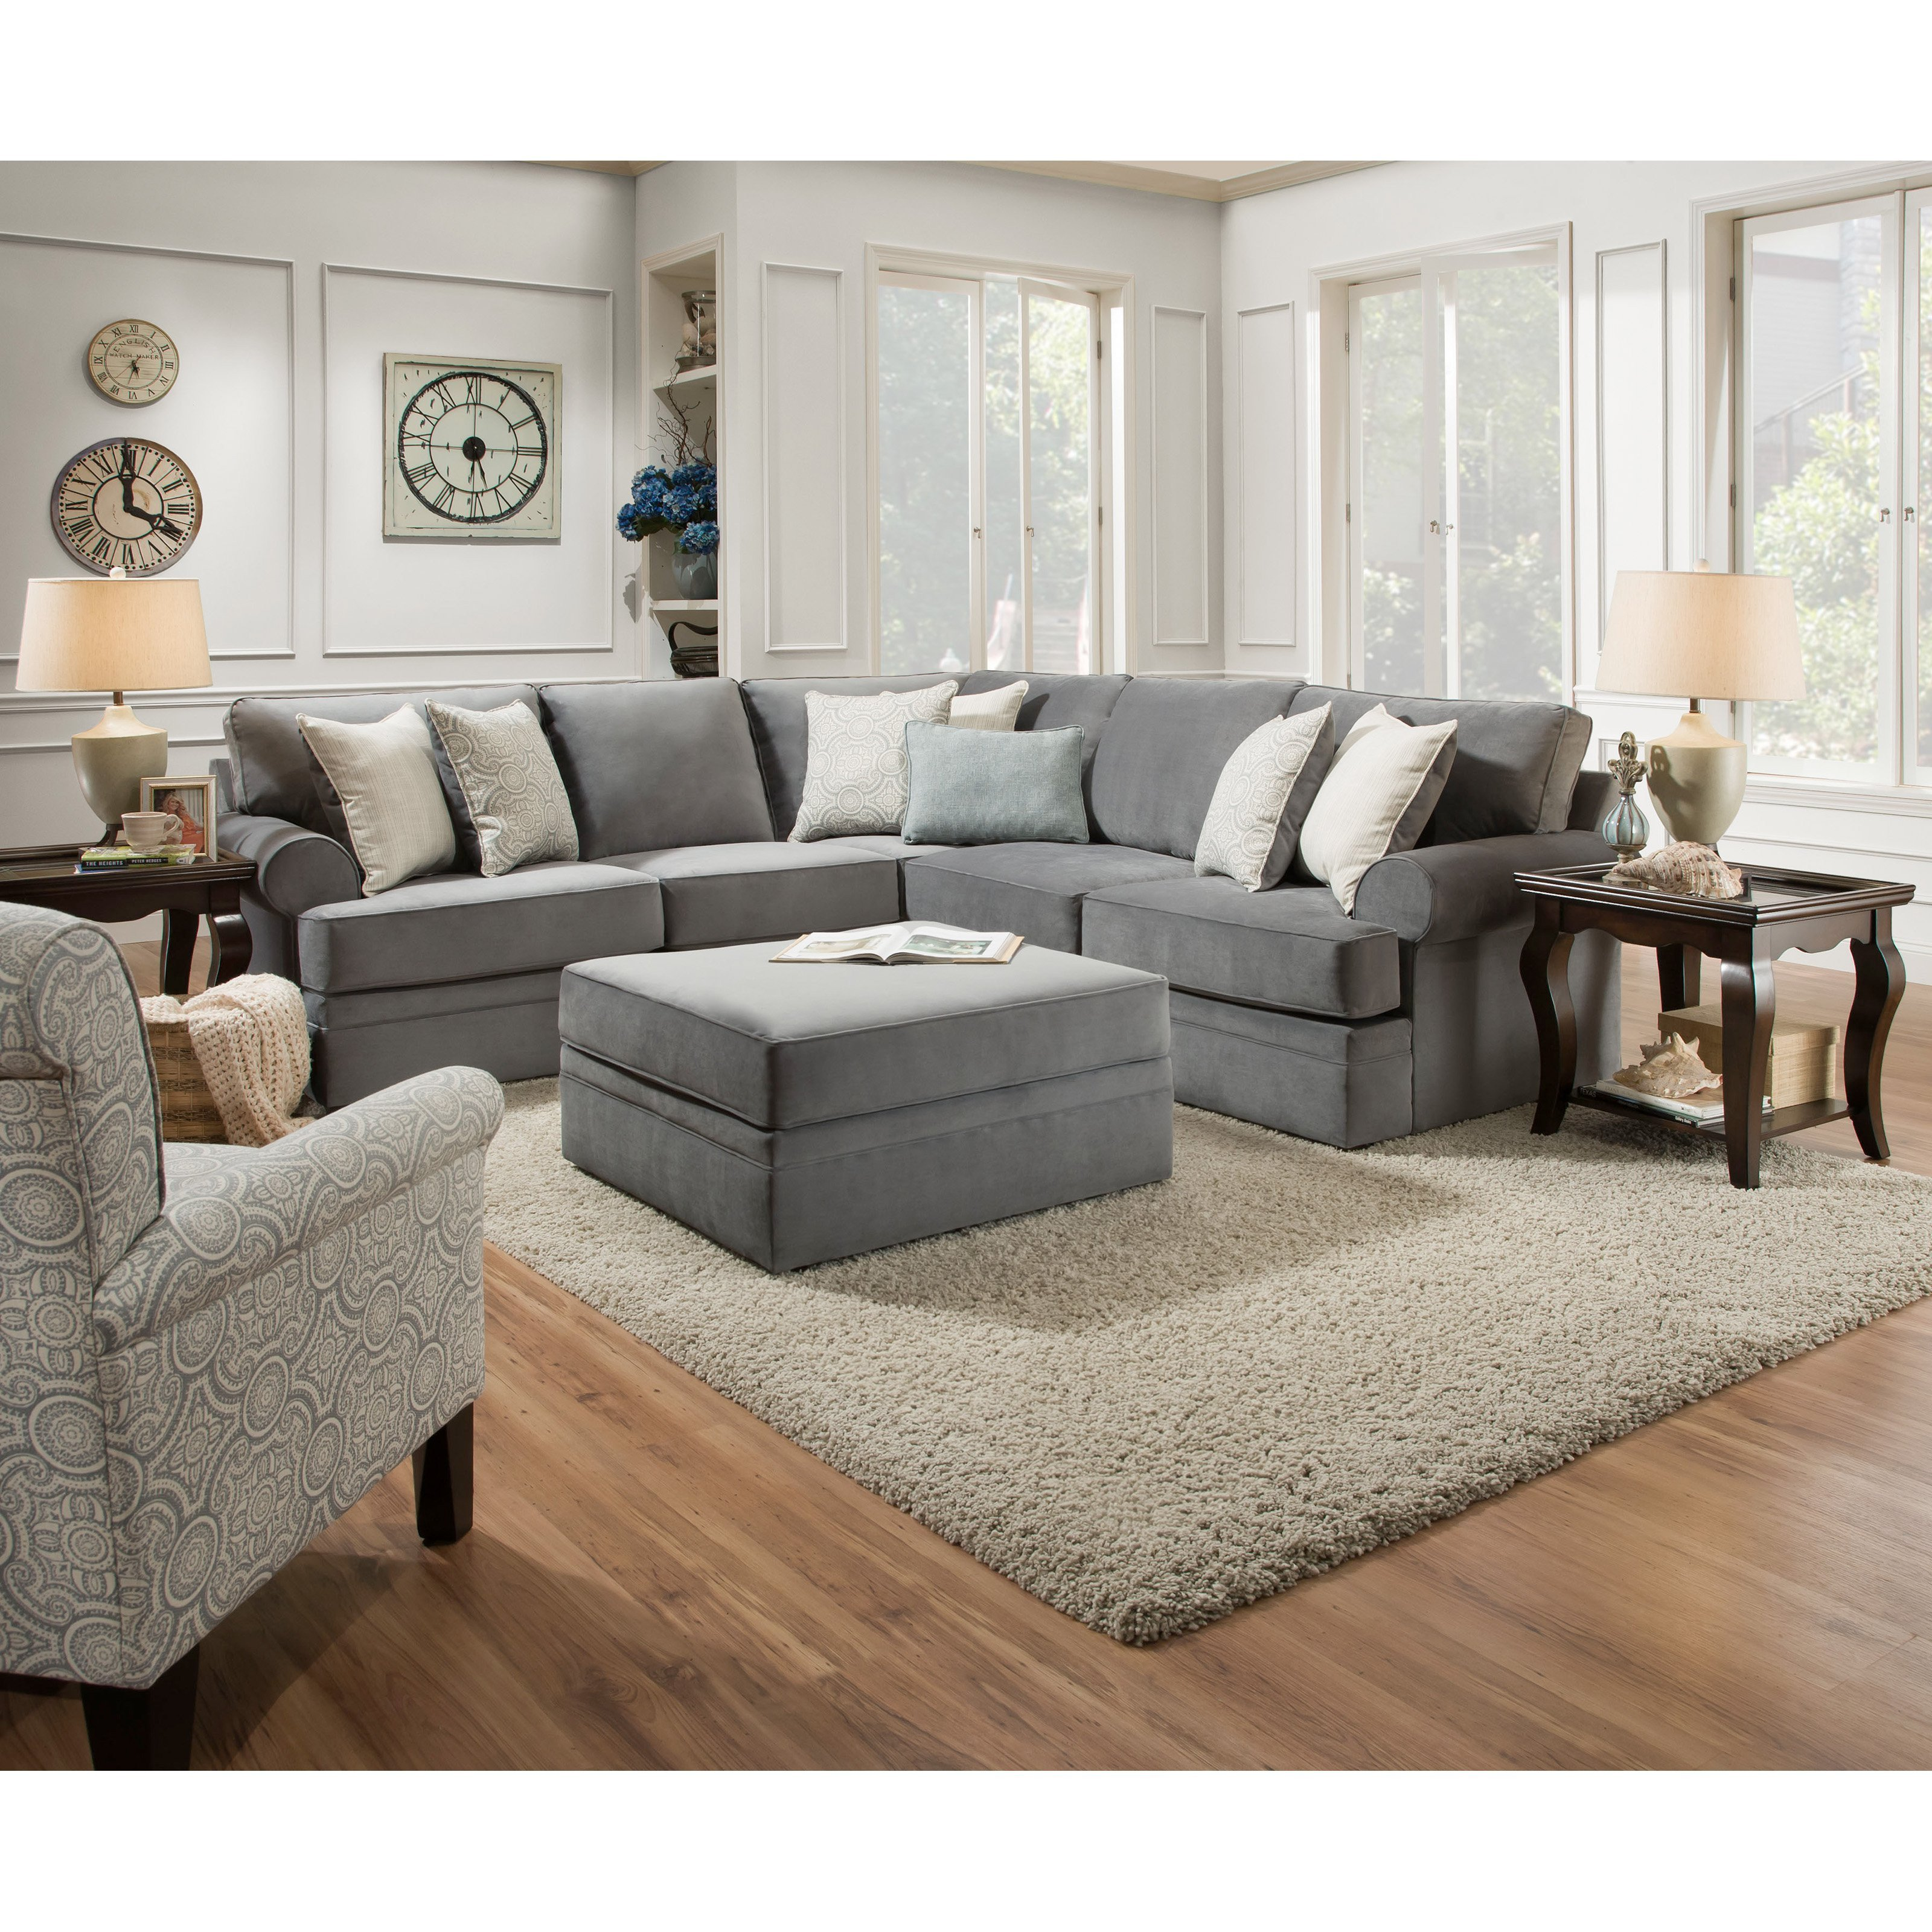 Comfortable Living Room Furniture Furniture Excellent Simmons Upholstery sofa for